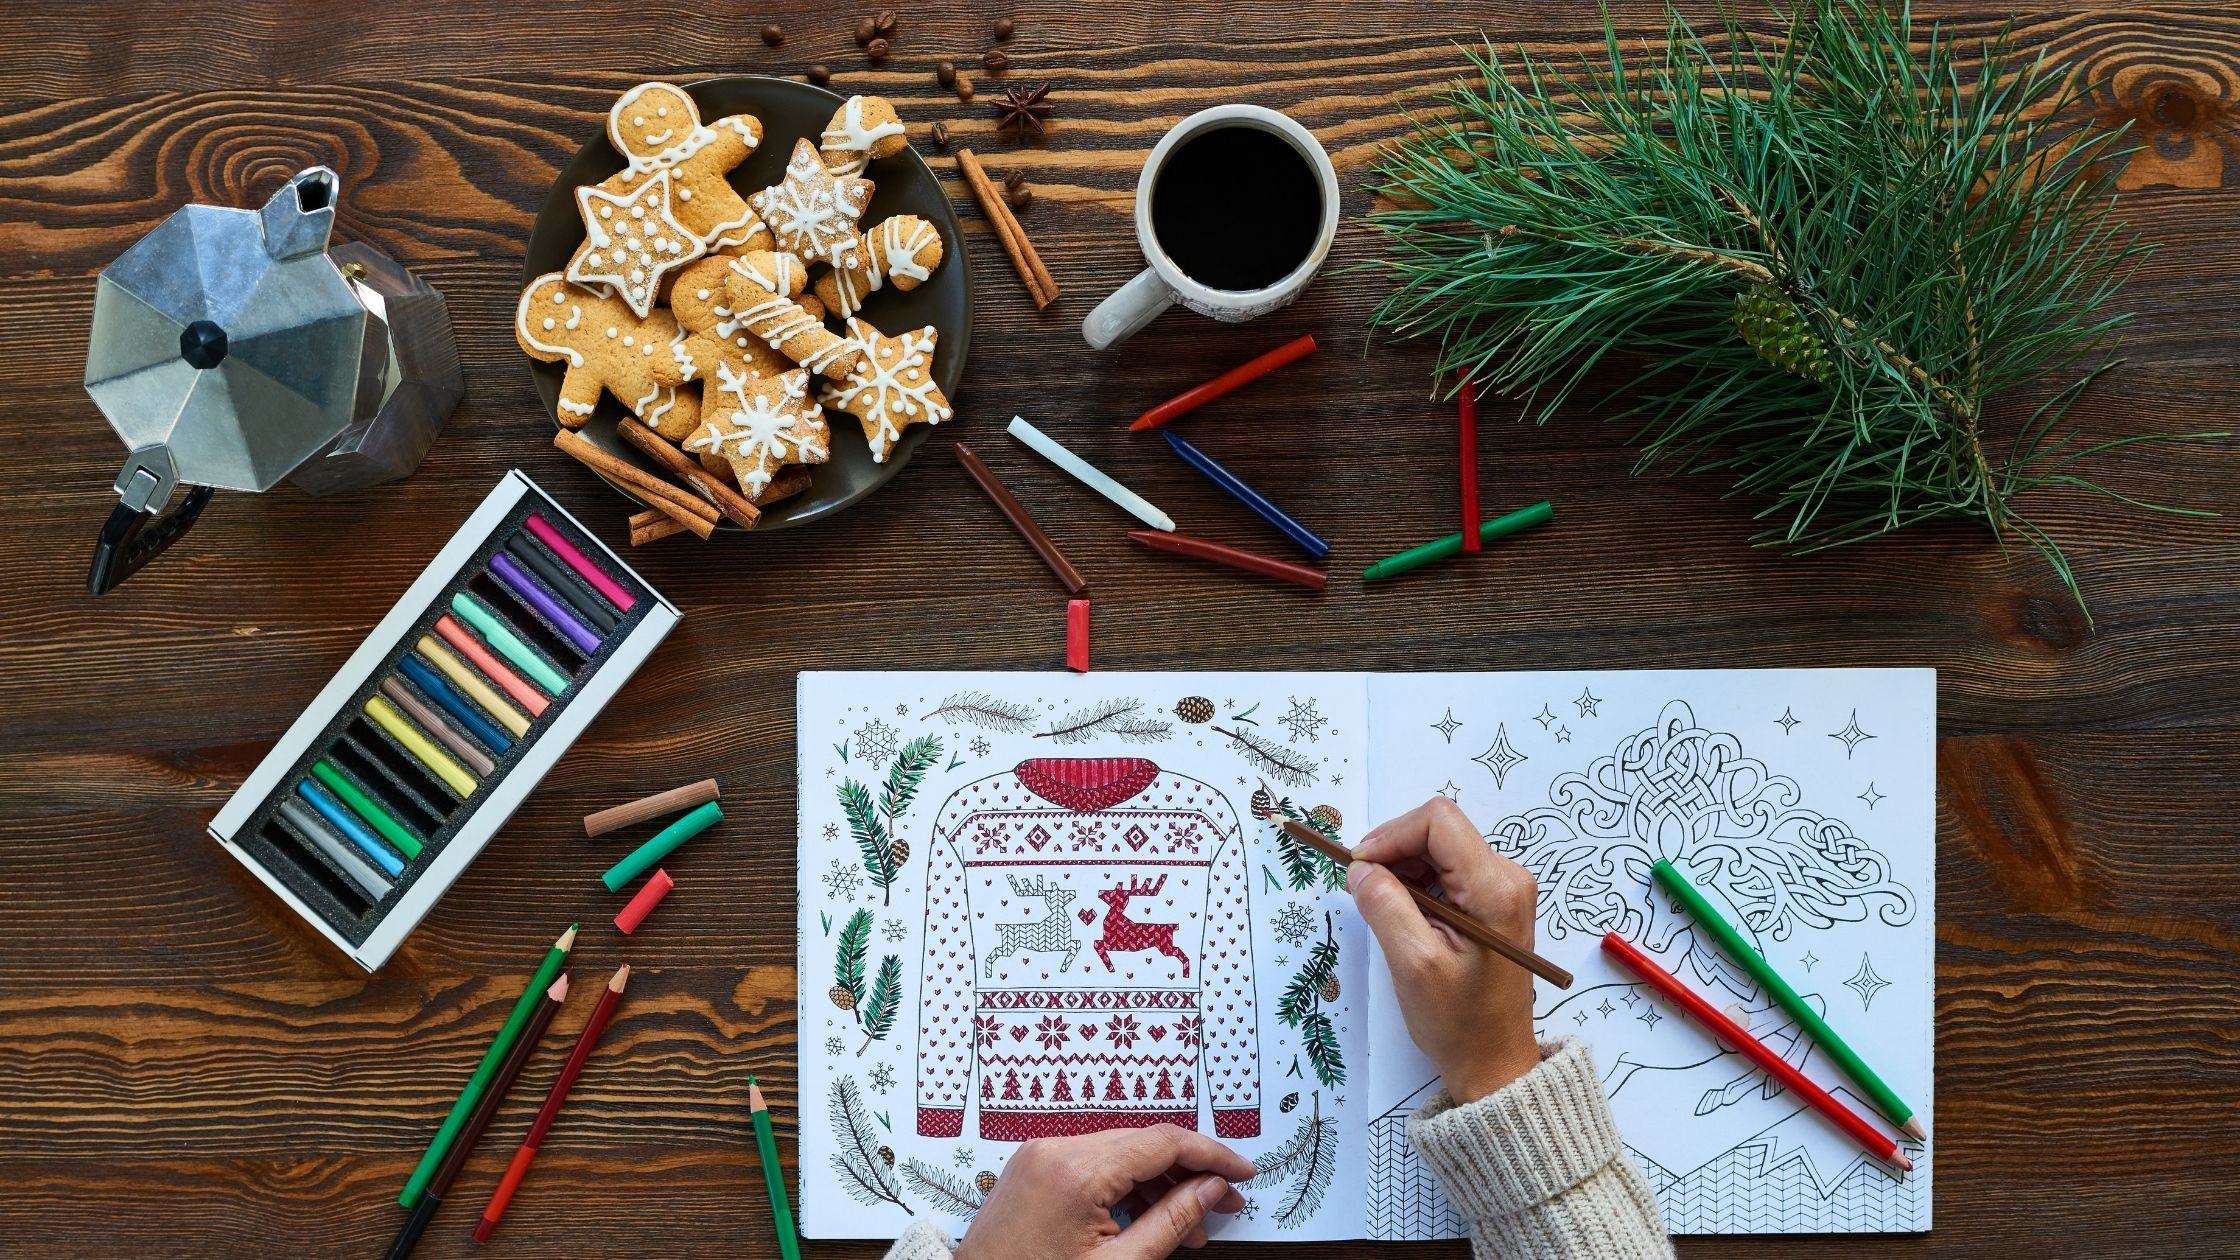 fearless and creative at Christmas